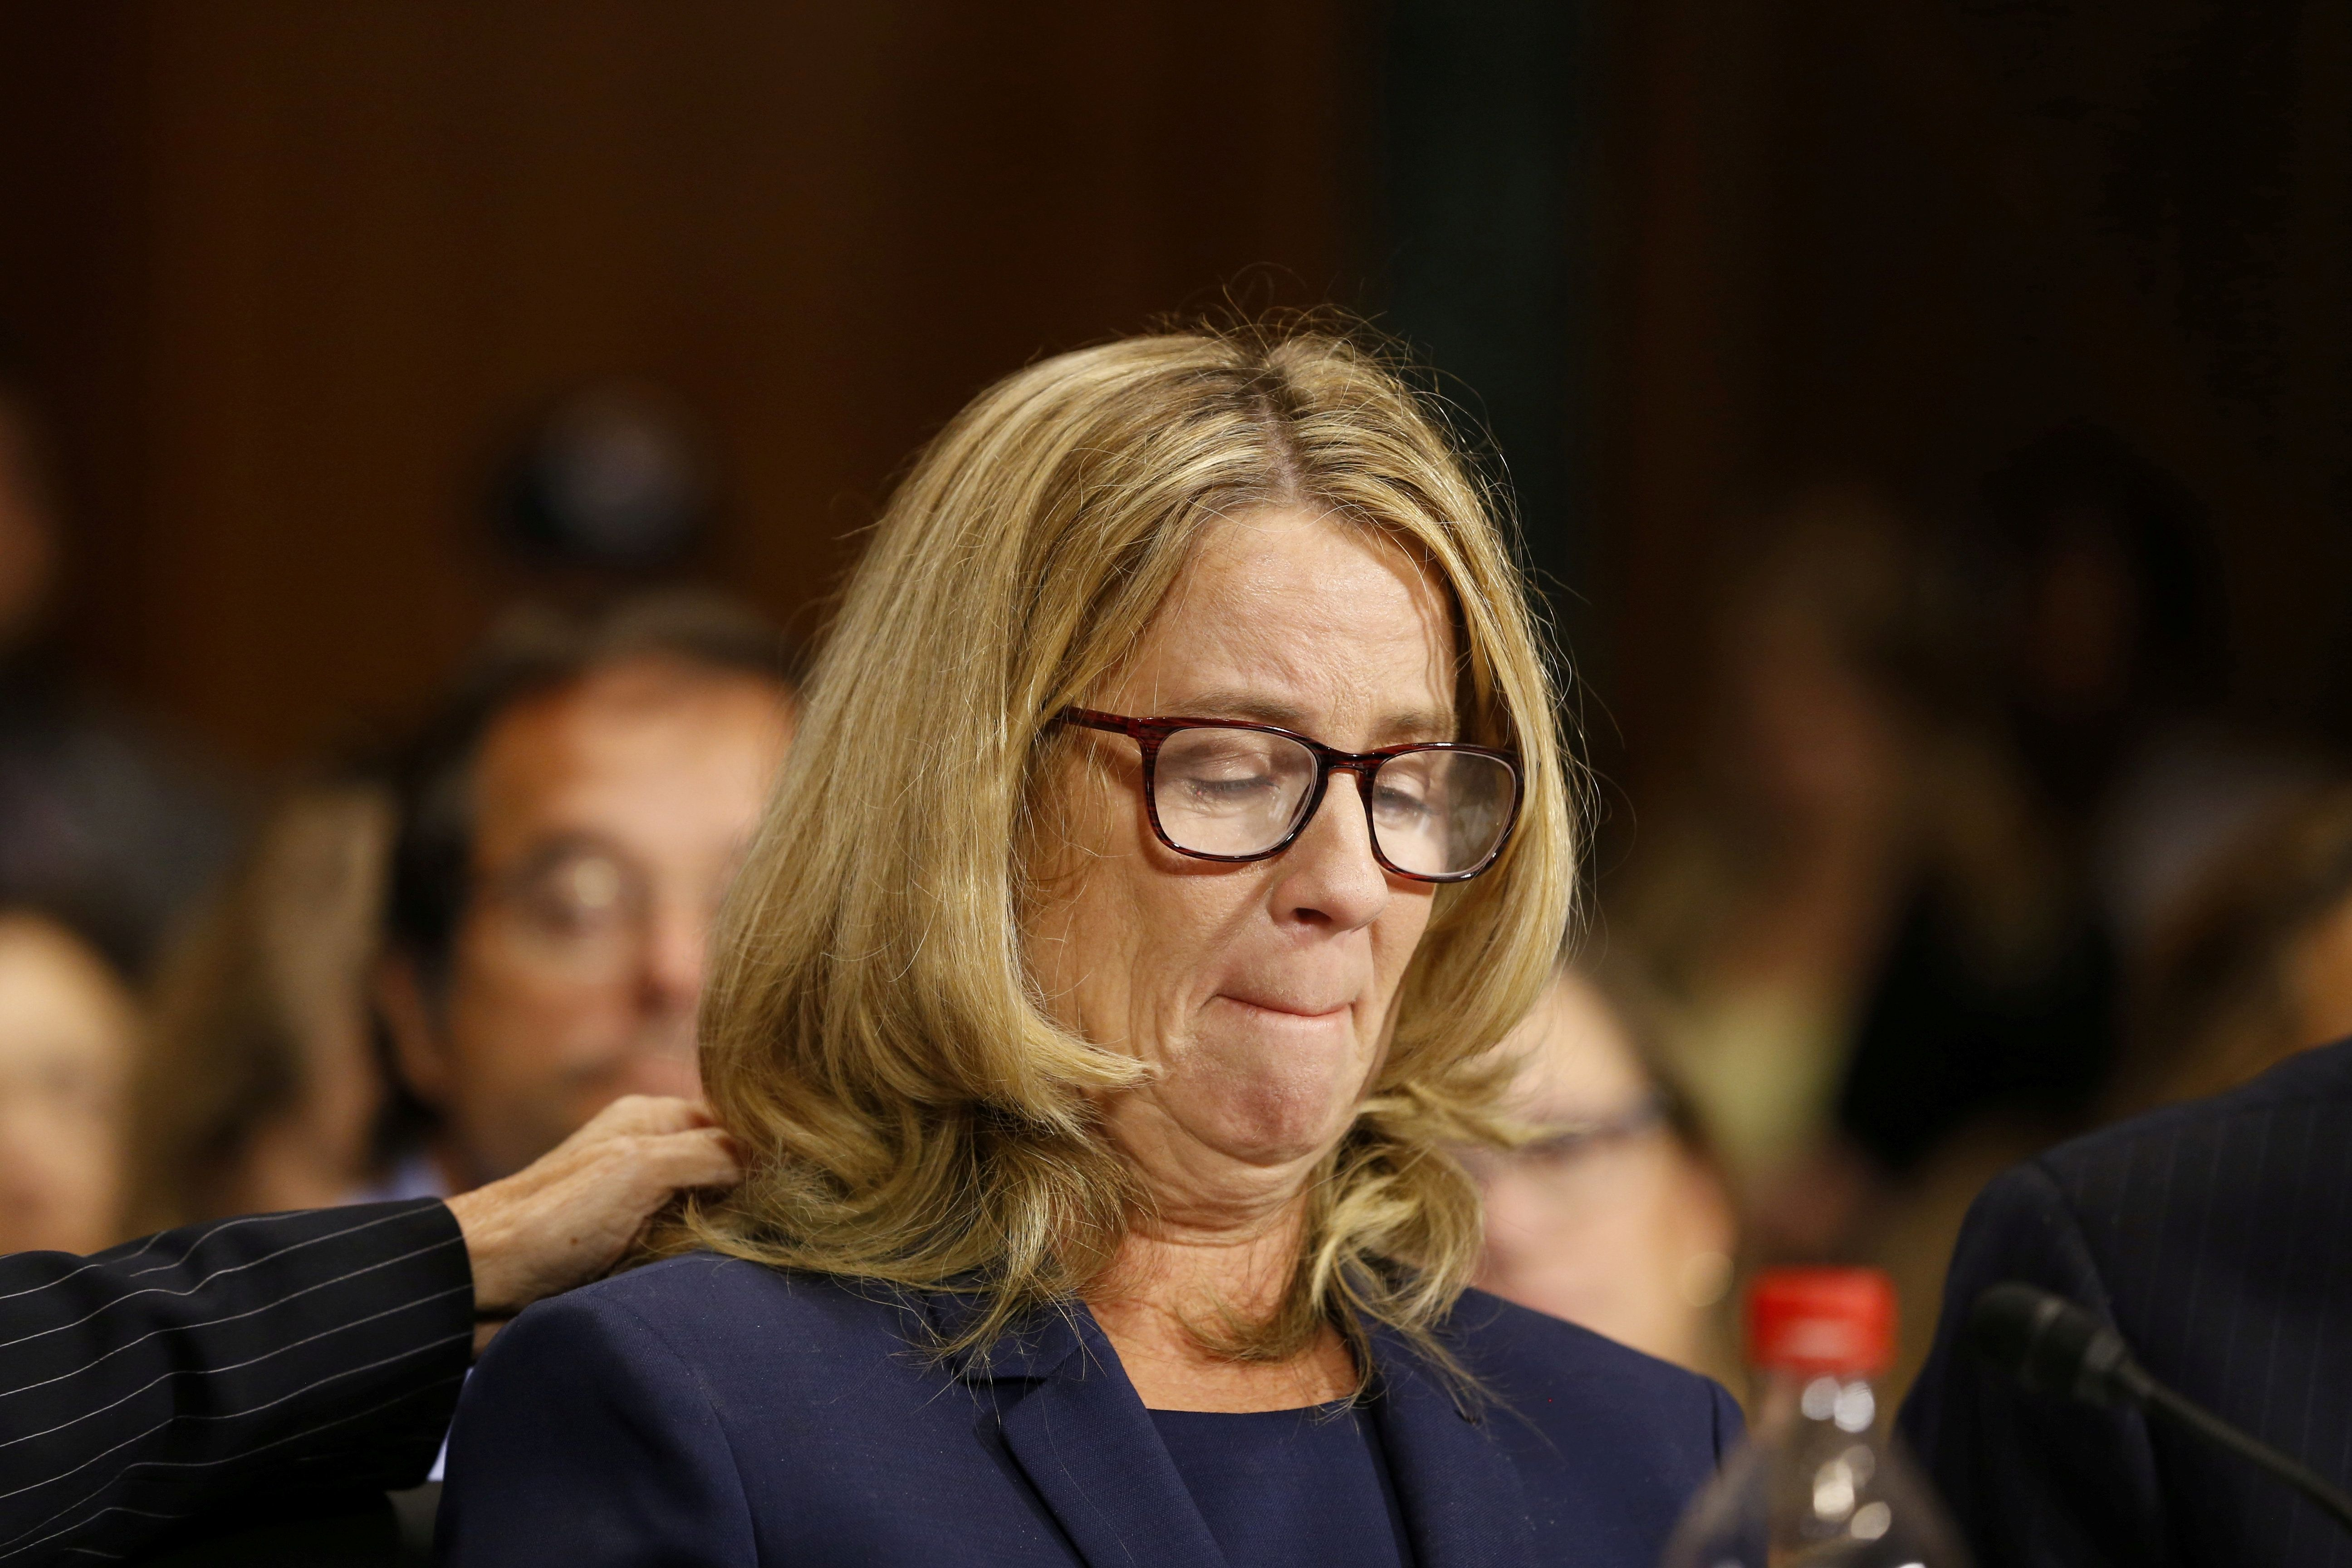 Christine Blasey Ford reacts as she speaks before the Senate Judiciary Committee hearing on the nomination of Brett Kavanaugh to be an associate justice of the Supreme Court of the United States, on Capitol Hill in Washington, DC, U.S., September 27, 2018. Michael Reynolds/Pool via REUTERS      TPX IMAGES OF THE DAY